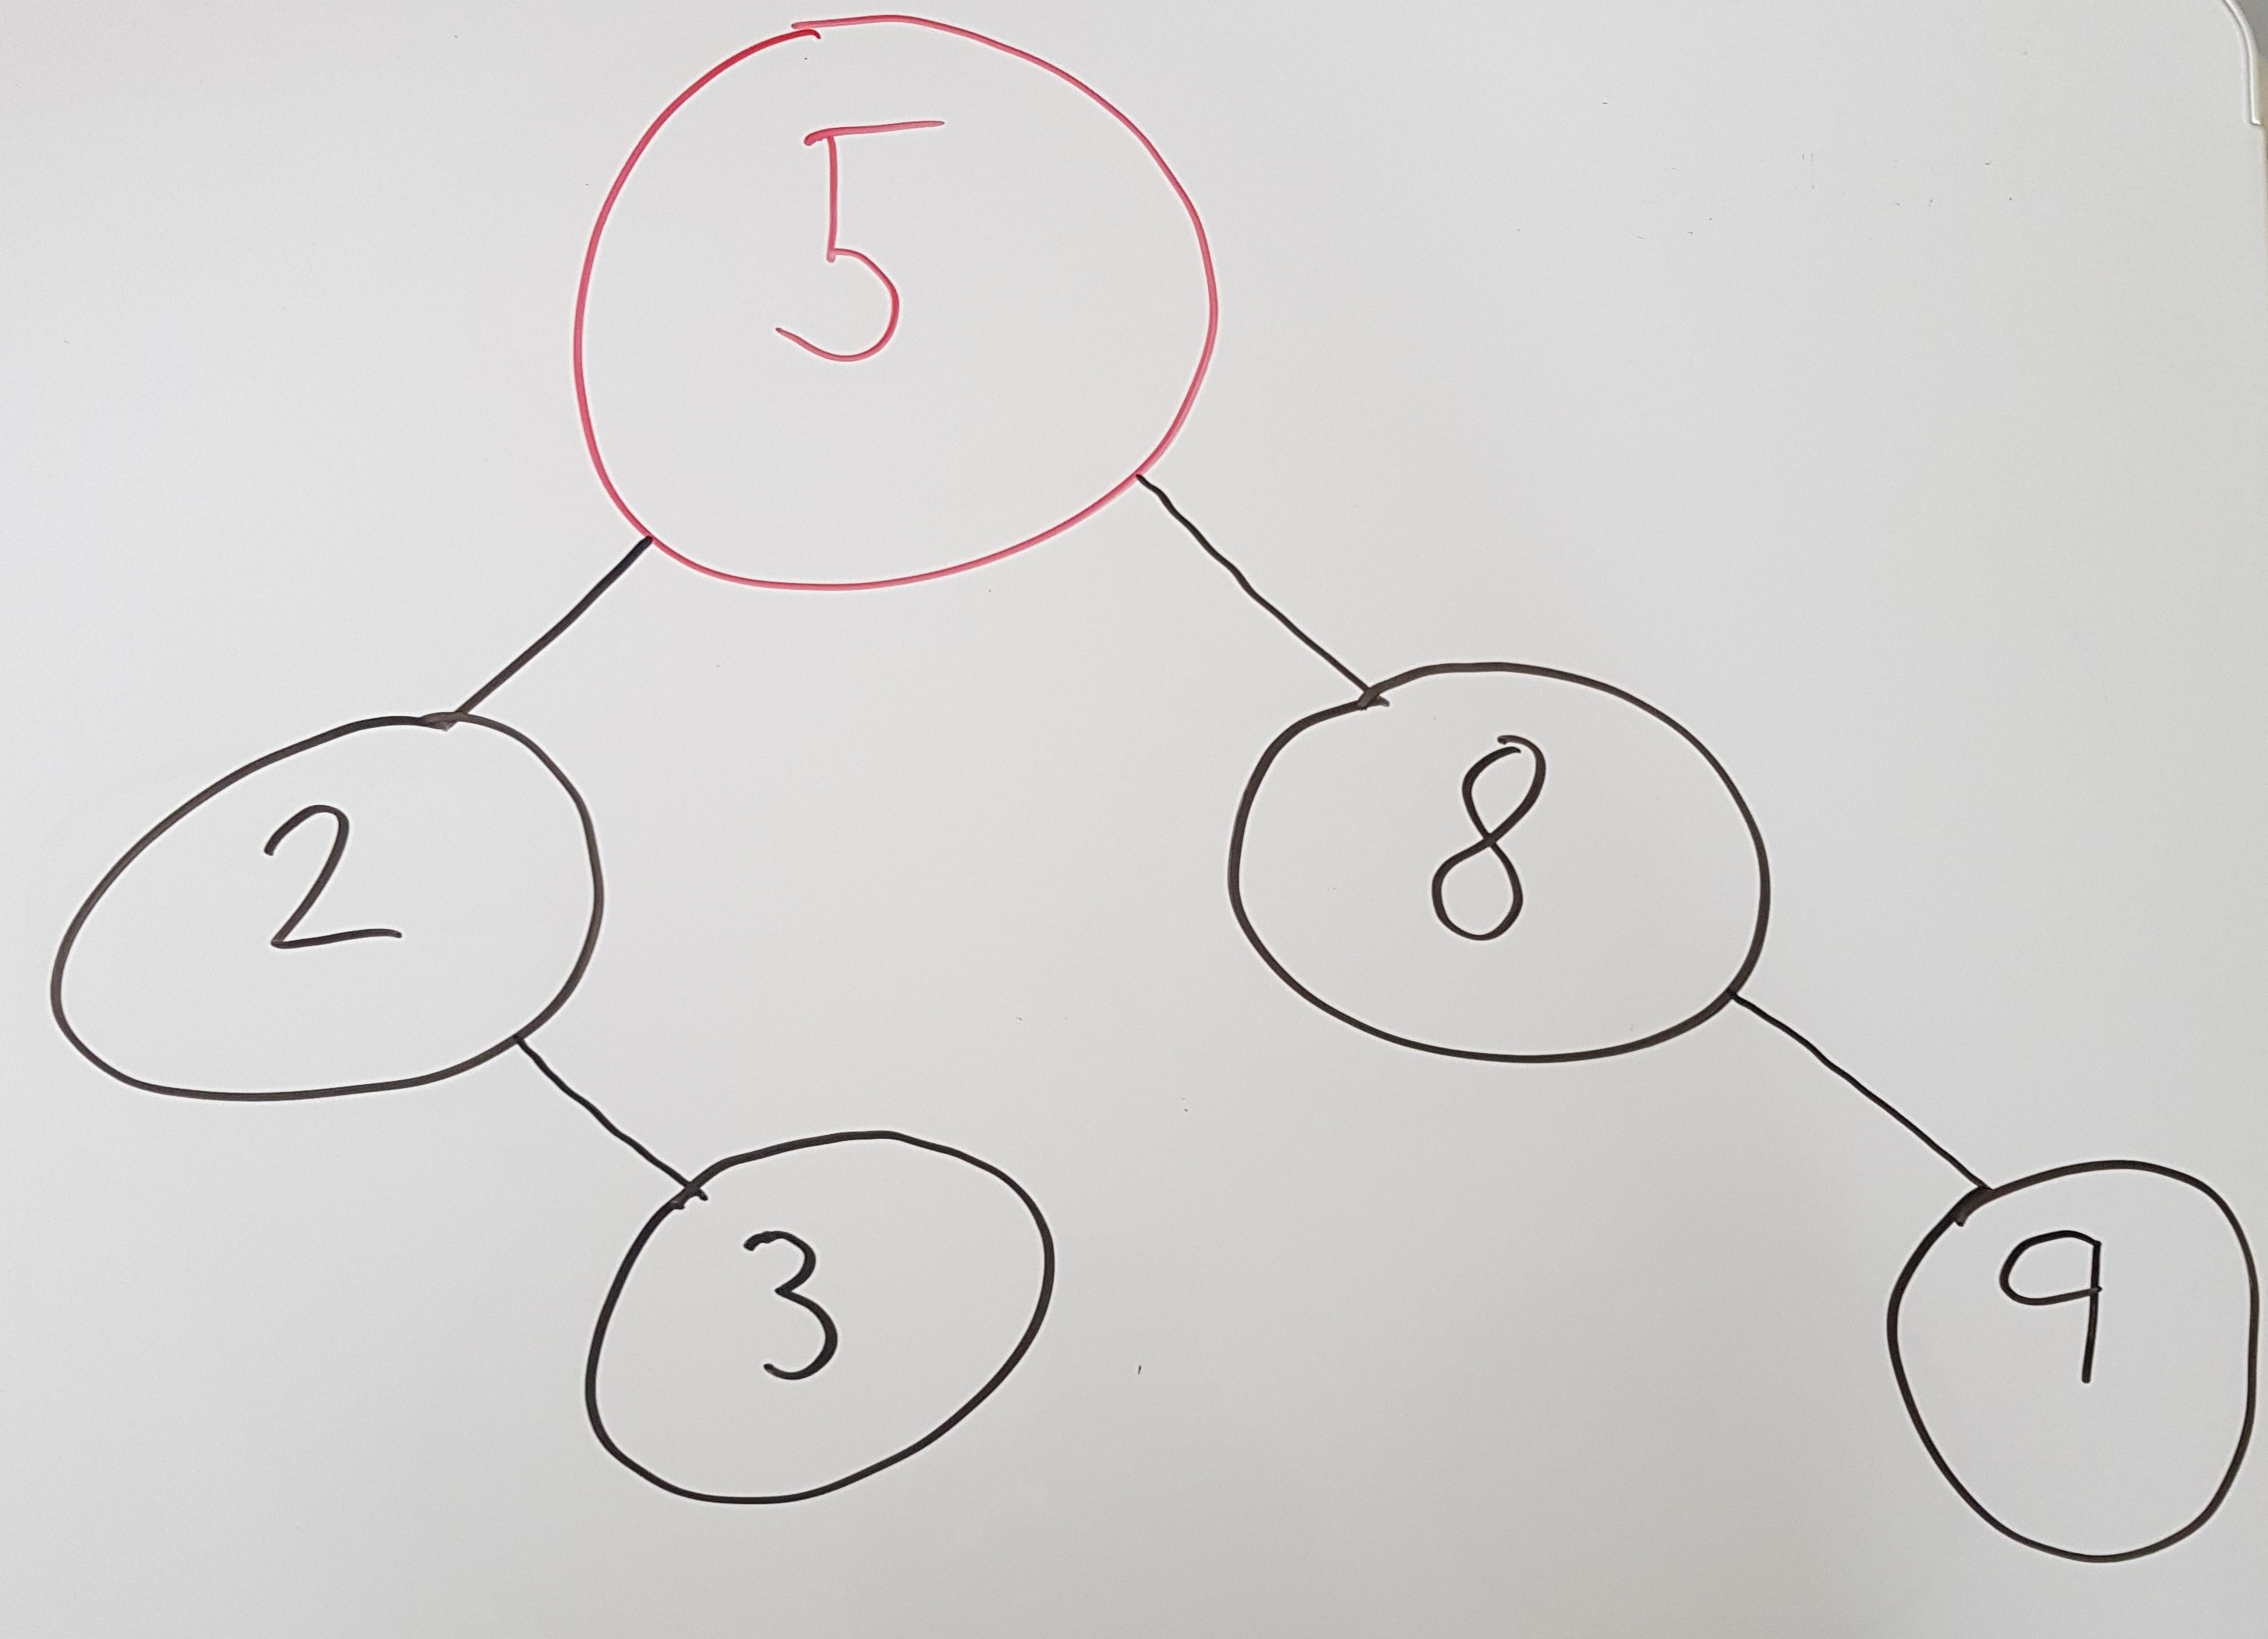 Binary Search Tree on Whiteboard